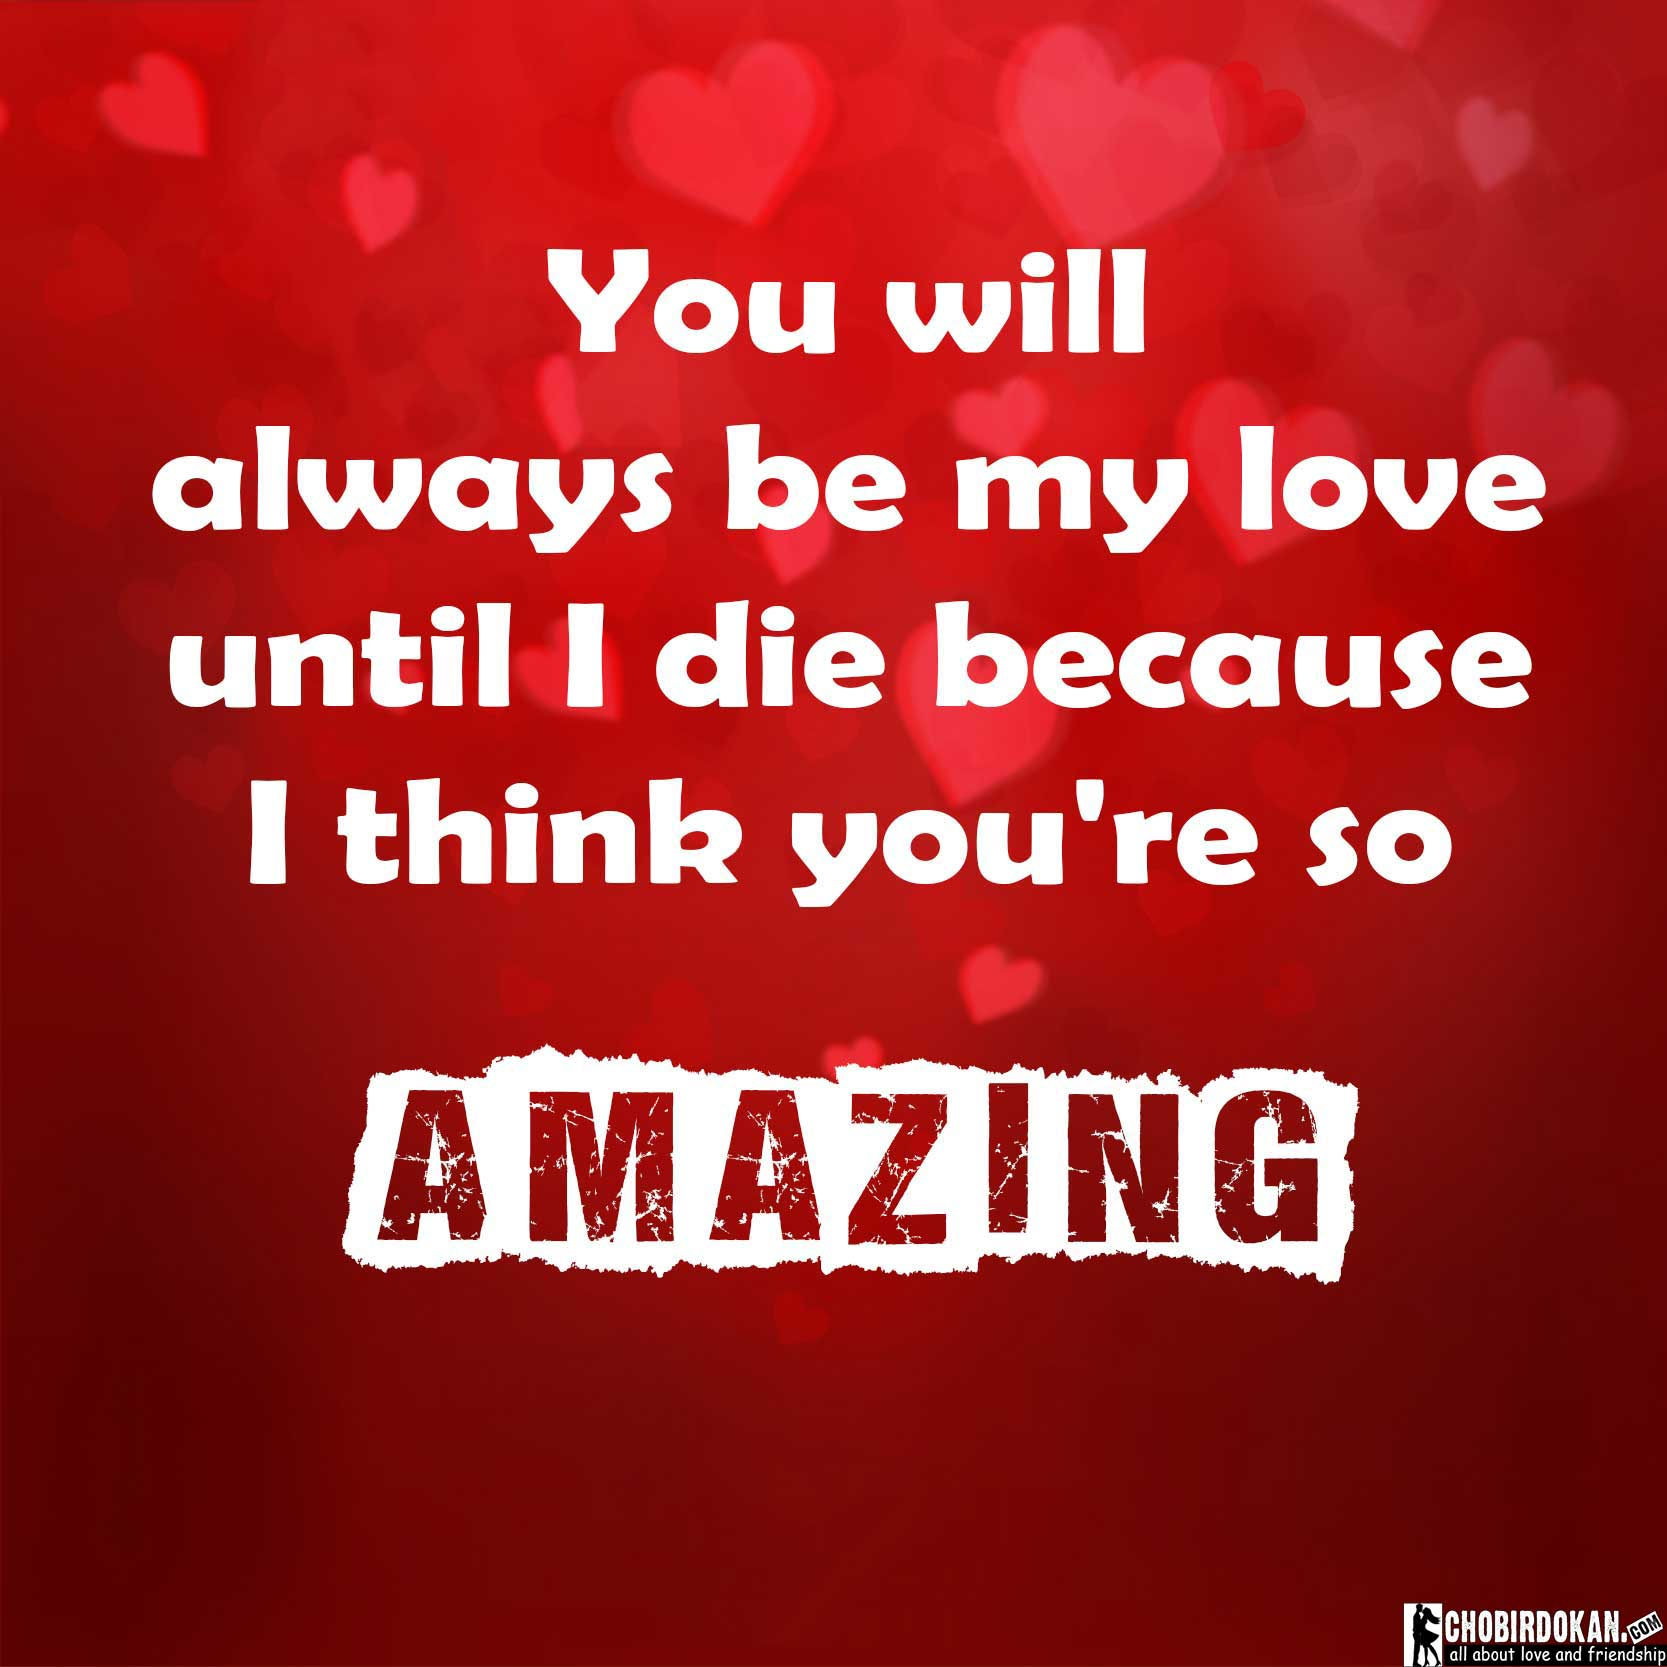 your amazing love quotes Famous your amazing love quotes Popular your amazing love quotes